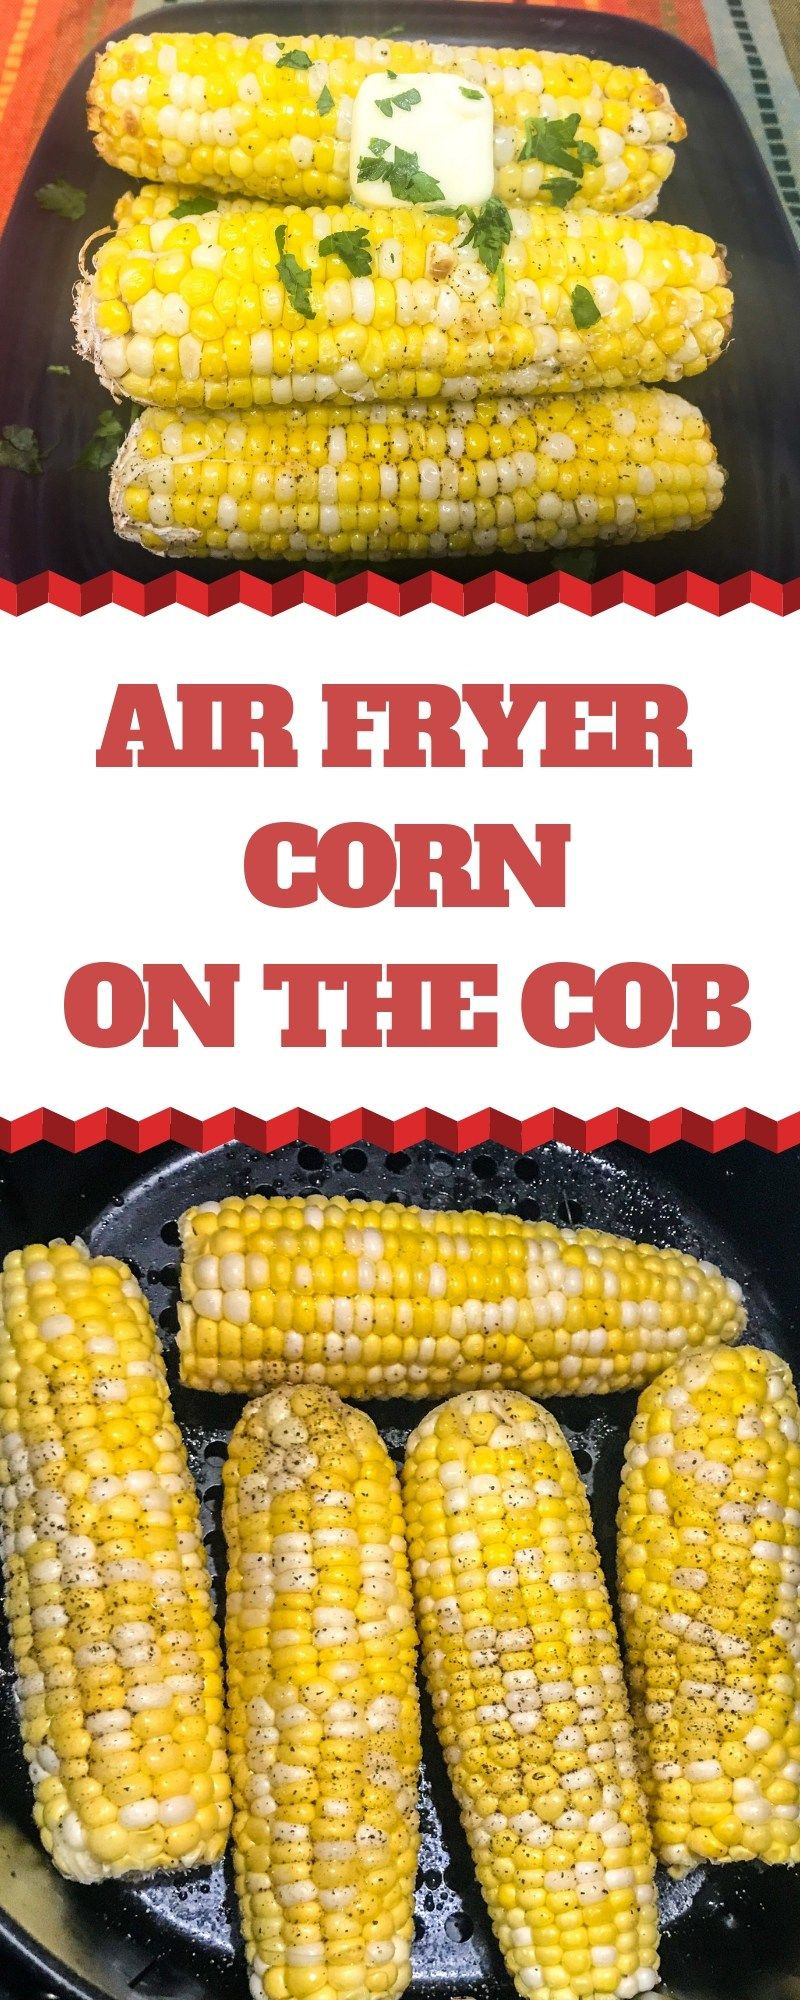 Air Fryer Corn on the Cob Recipe (With images) Air